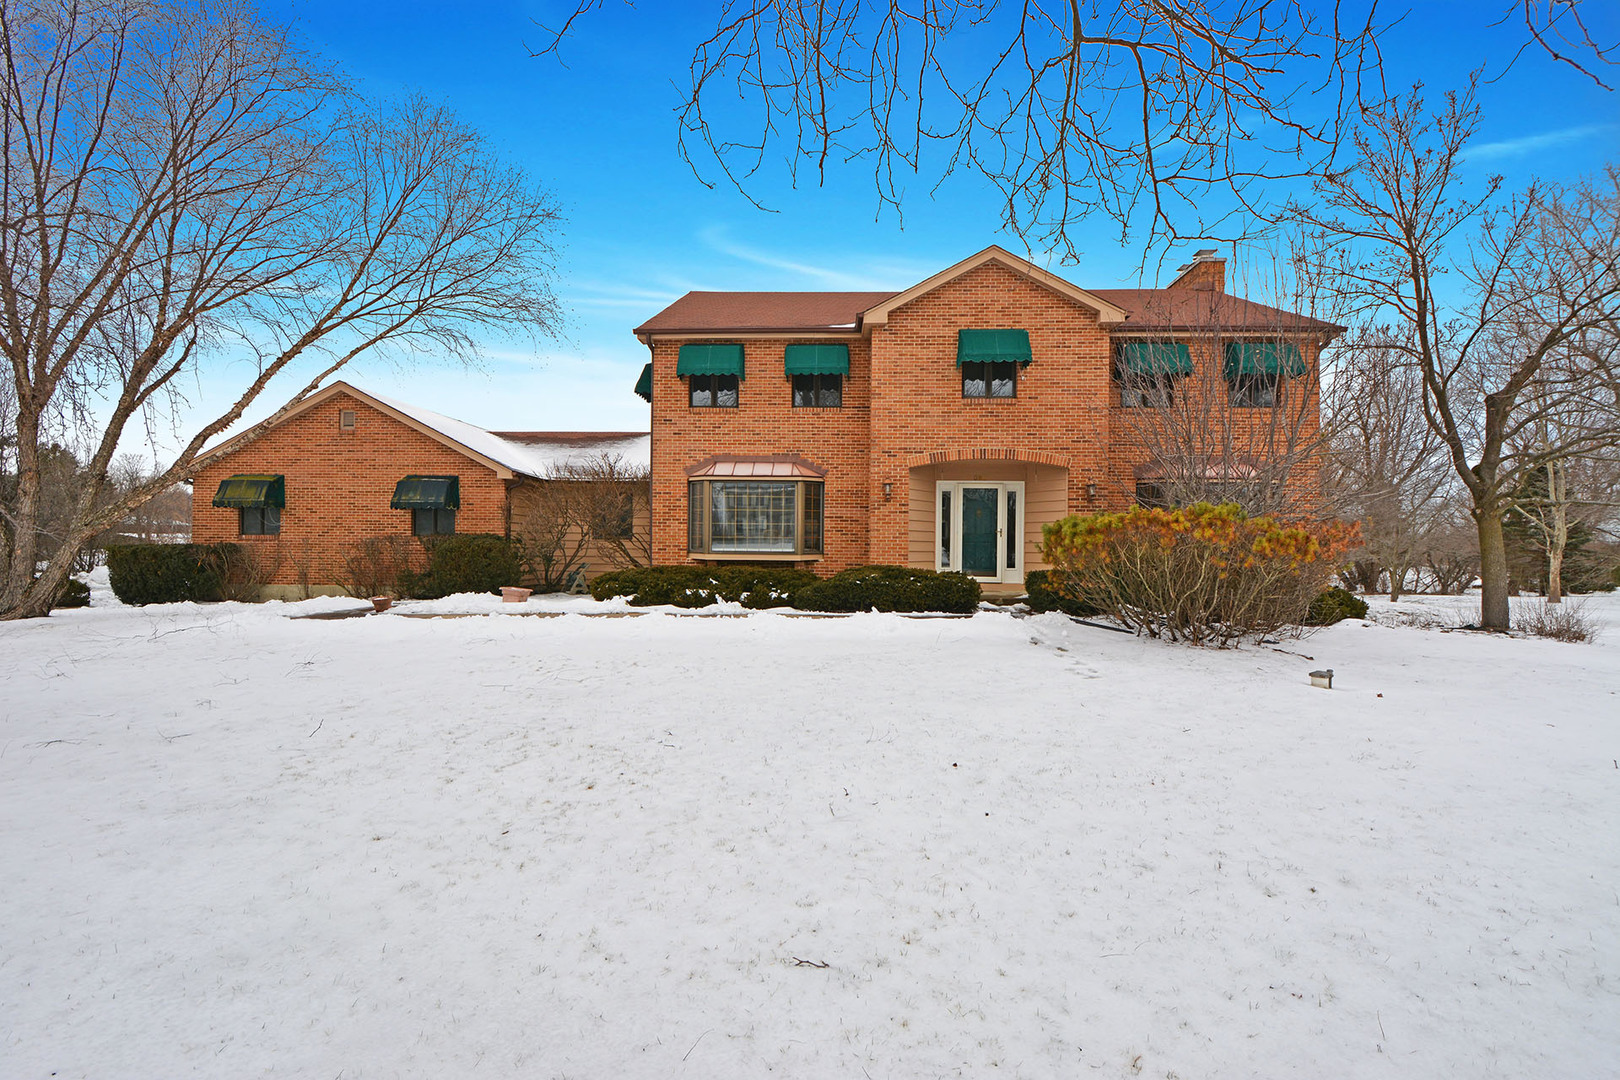 1 Canterbury Lane, Hawthorn Woods, Illinois 60047